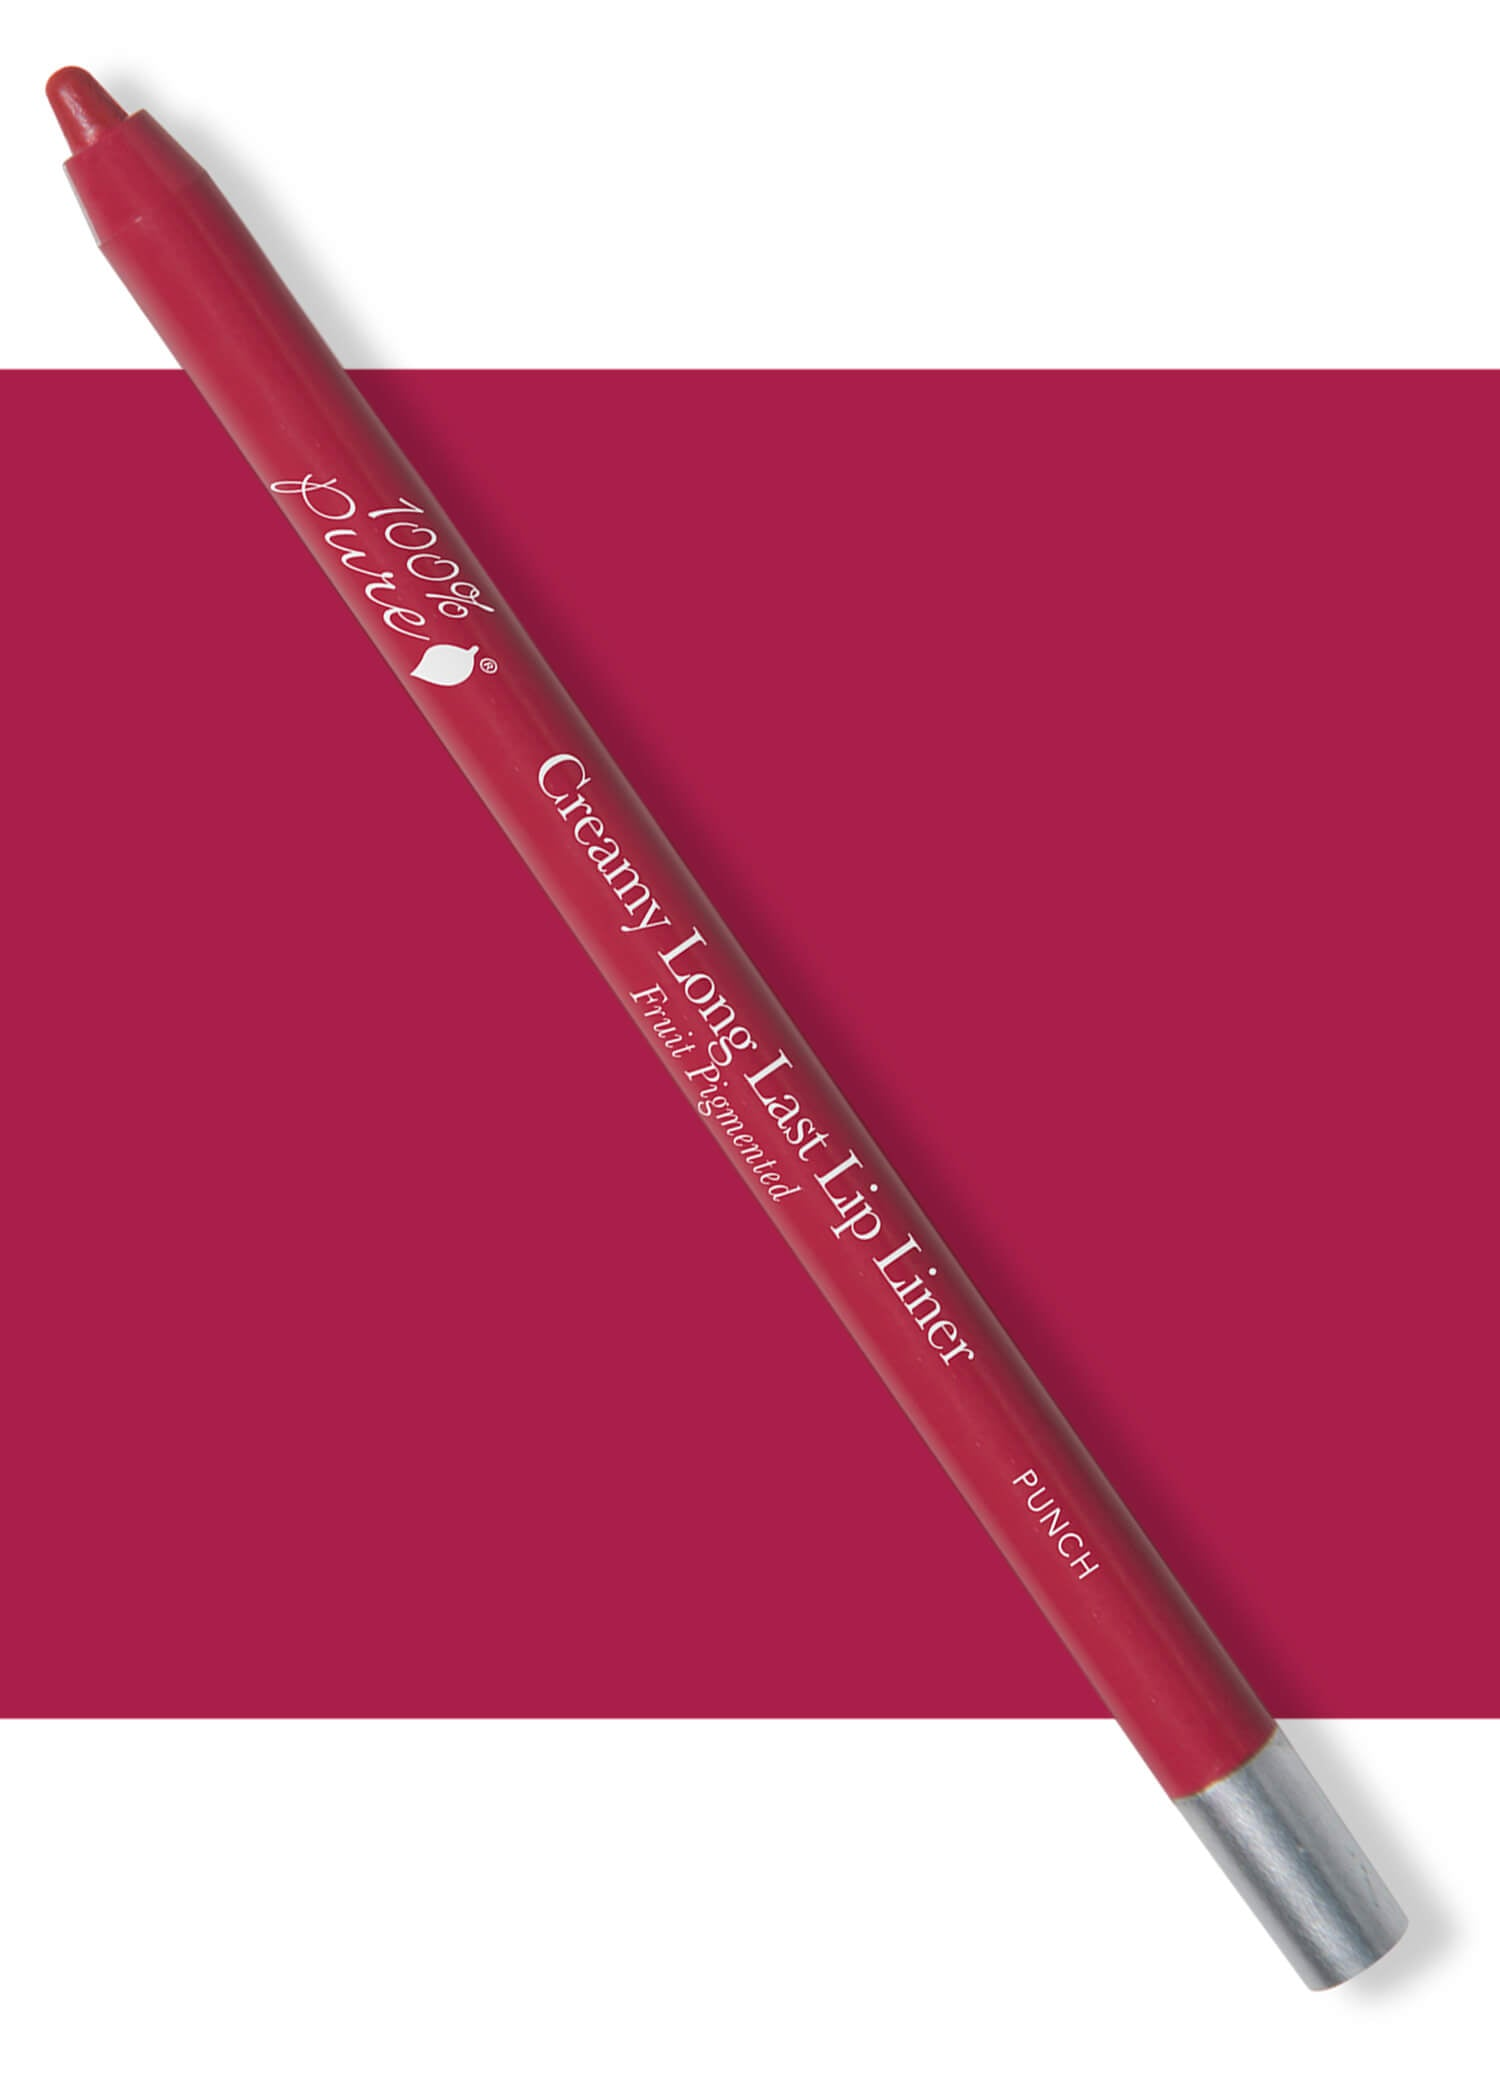 100% PURE Creamy Long Last Lip Liner: Punch